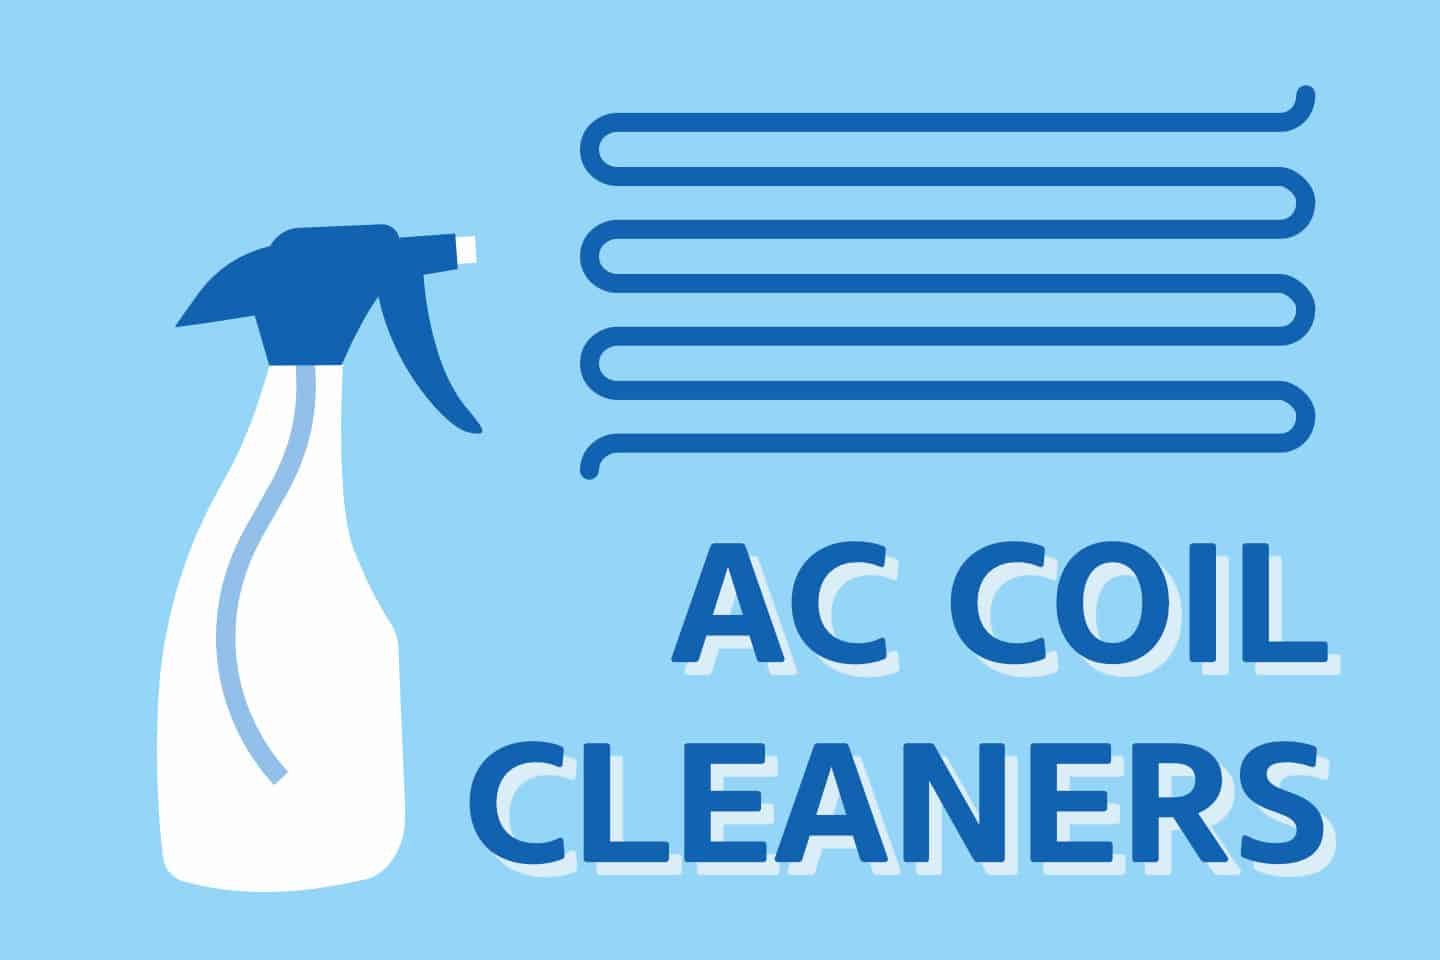 ❄️ Best AC Coil Cleaner & Easiest Way To Clean AC